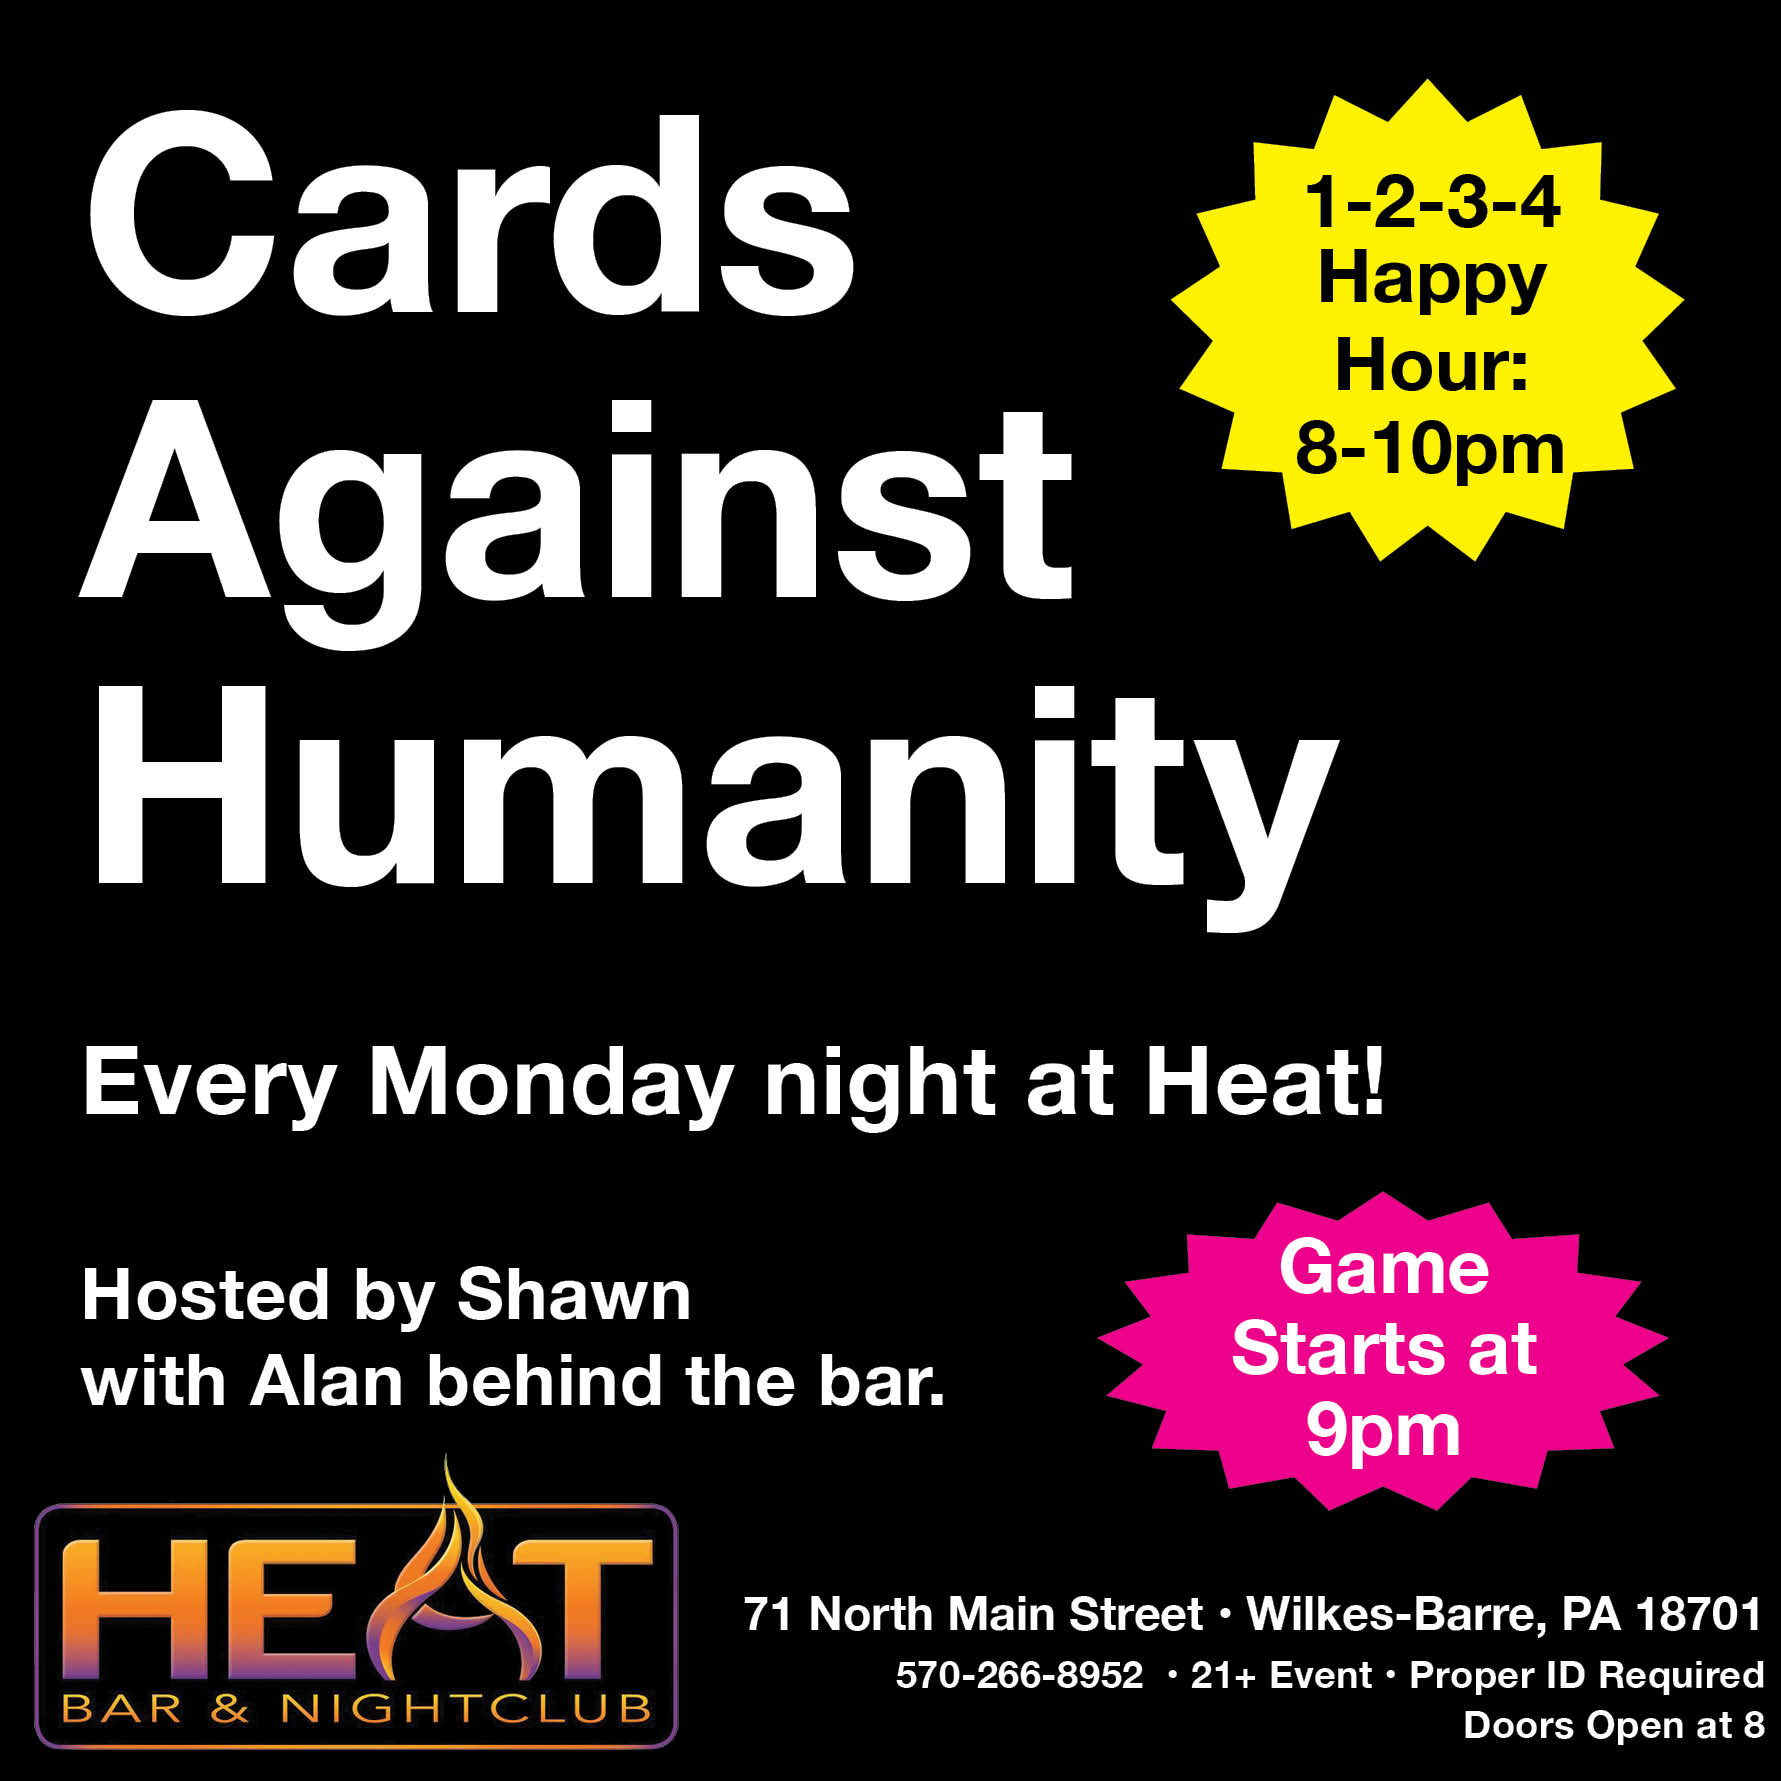 Heat_Cards_Against_Humanity_Mondays